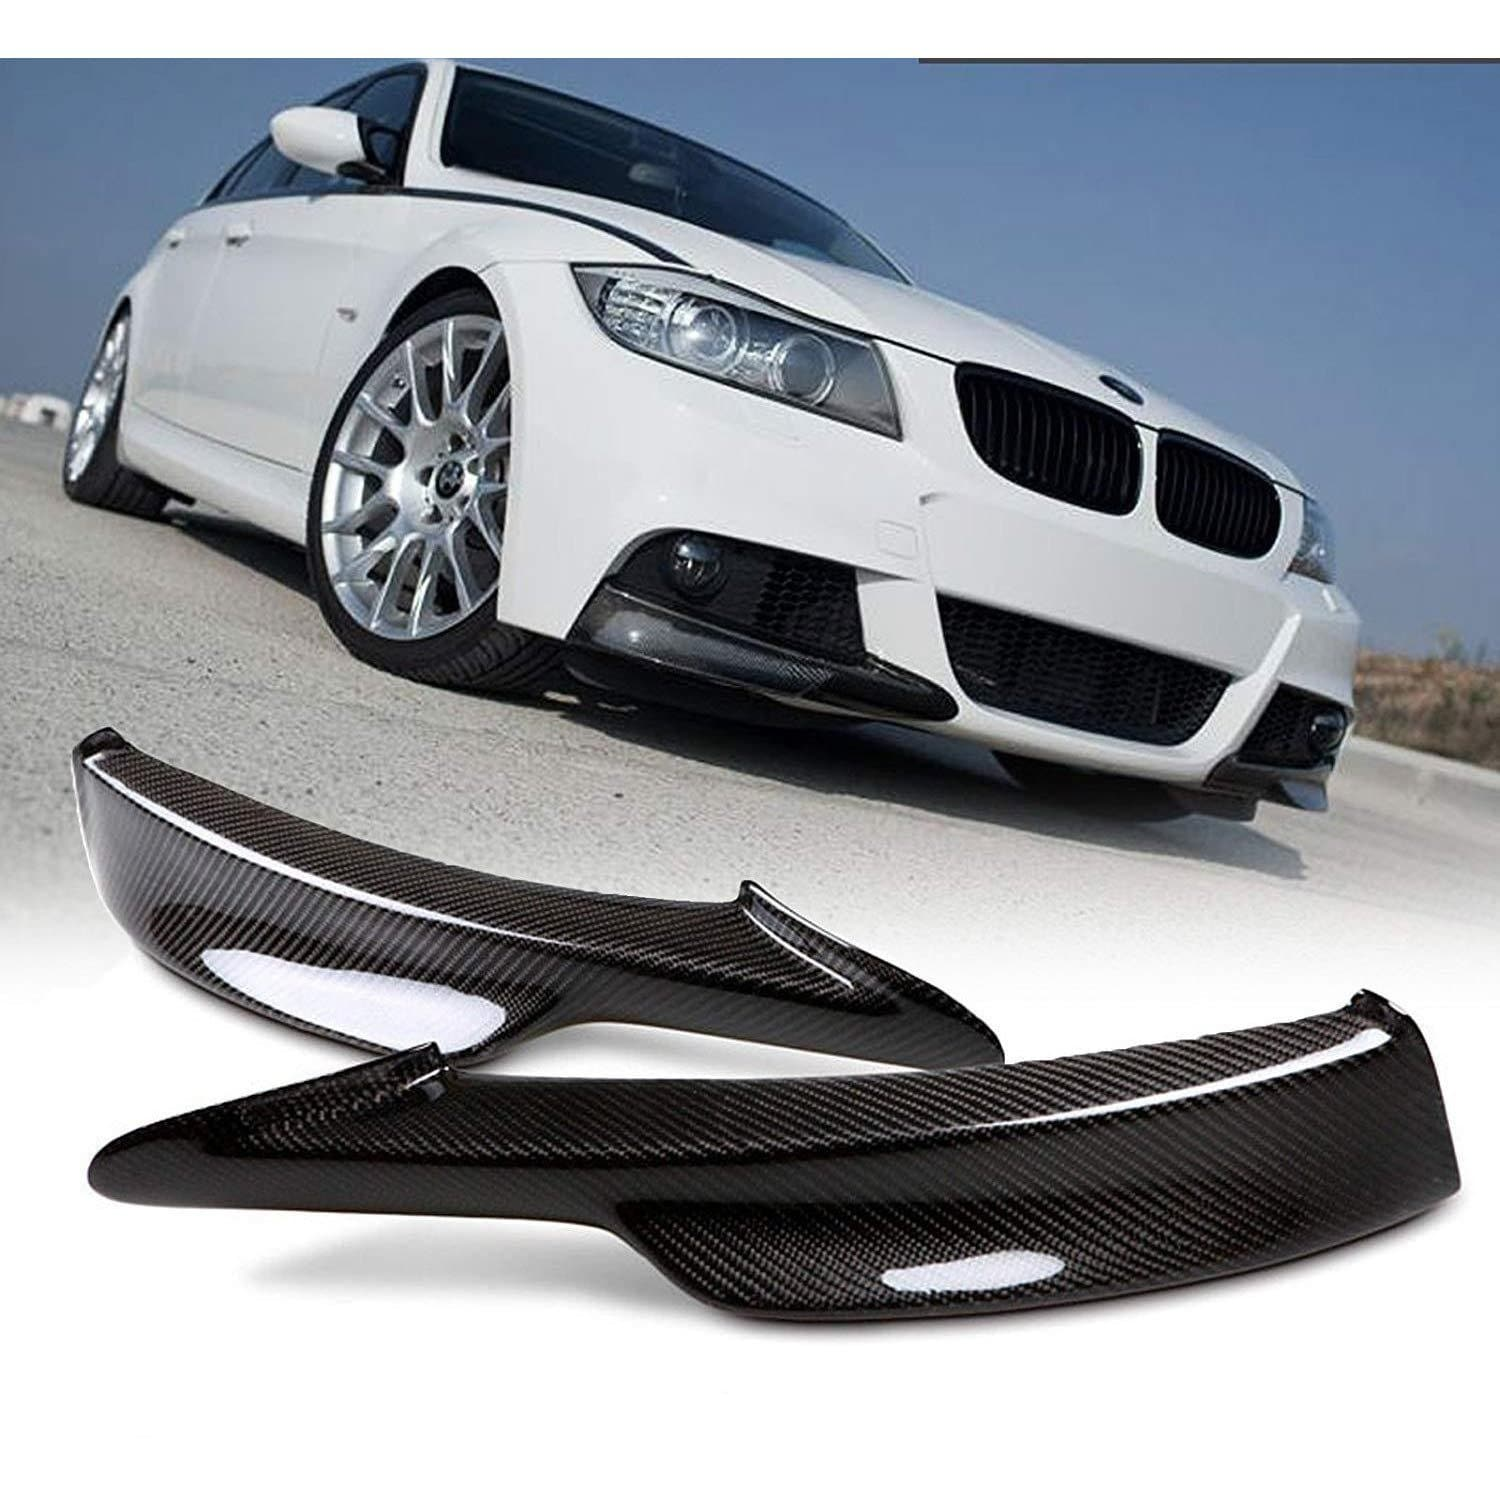 Carbon Fiber Front Bumper Splitters for BMW E90/E91 3-Series 2009-2011